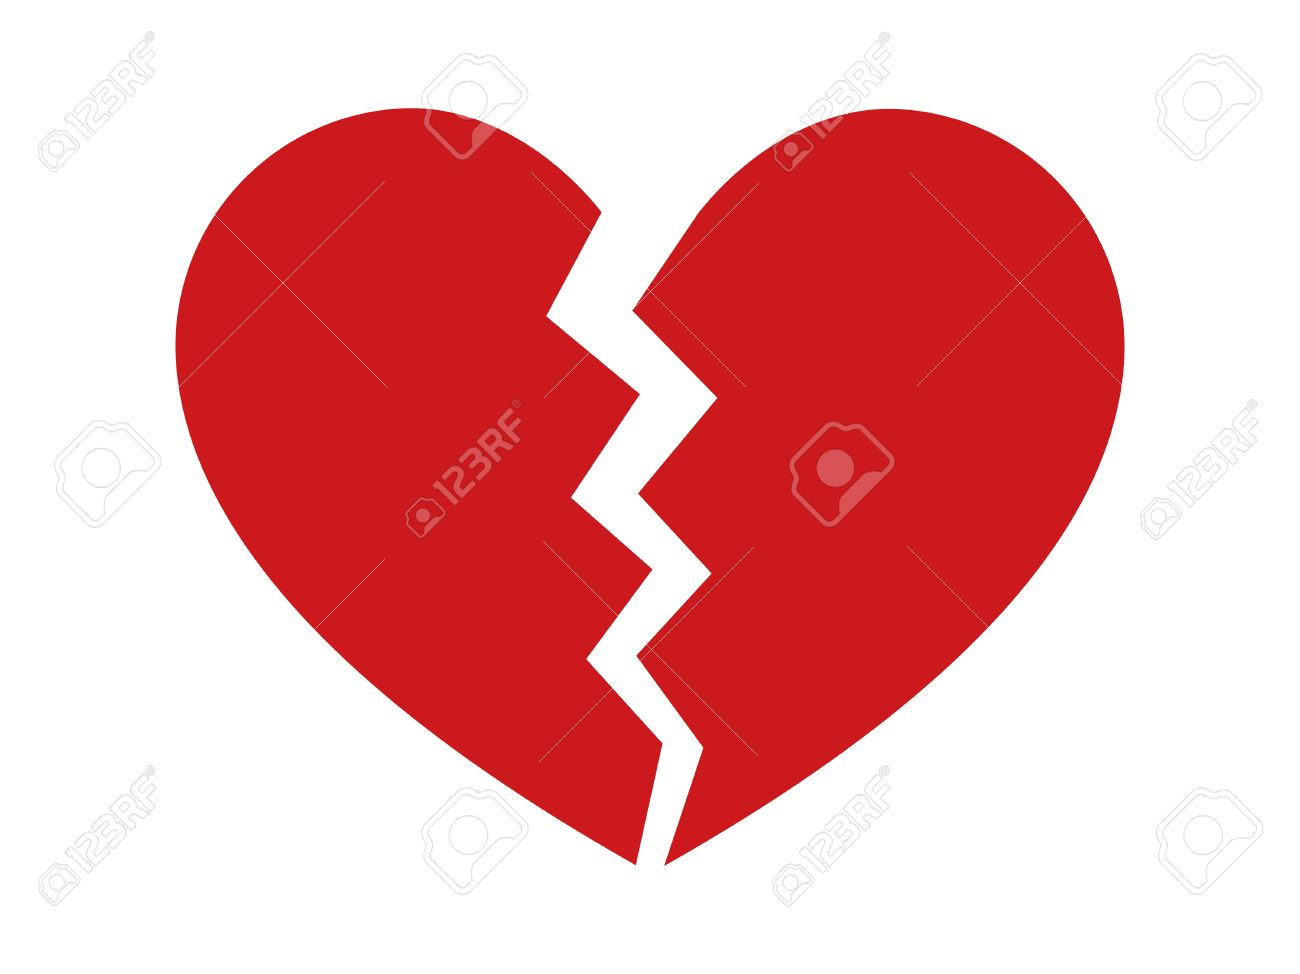 Red Heartbreak Heart Break Or Divorce Flat Icon For Apps And